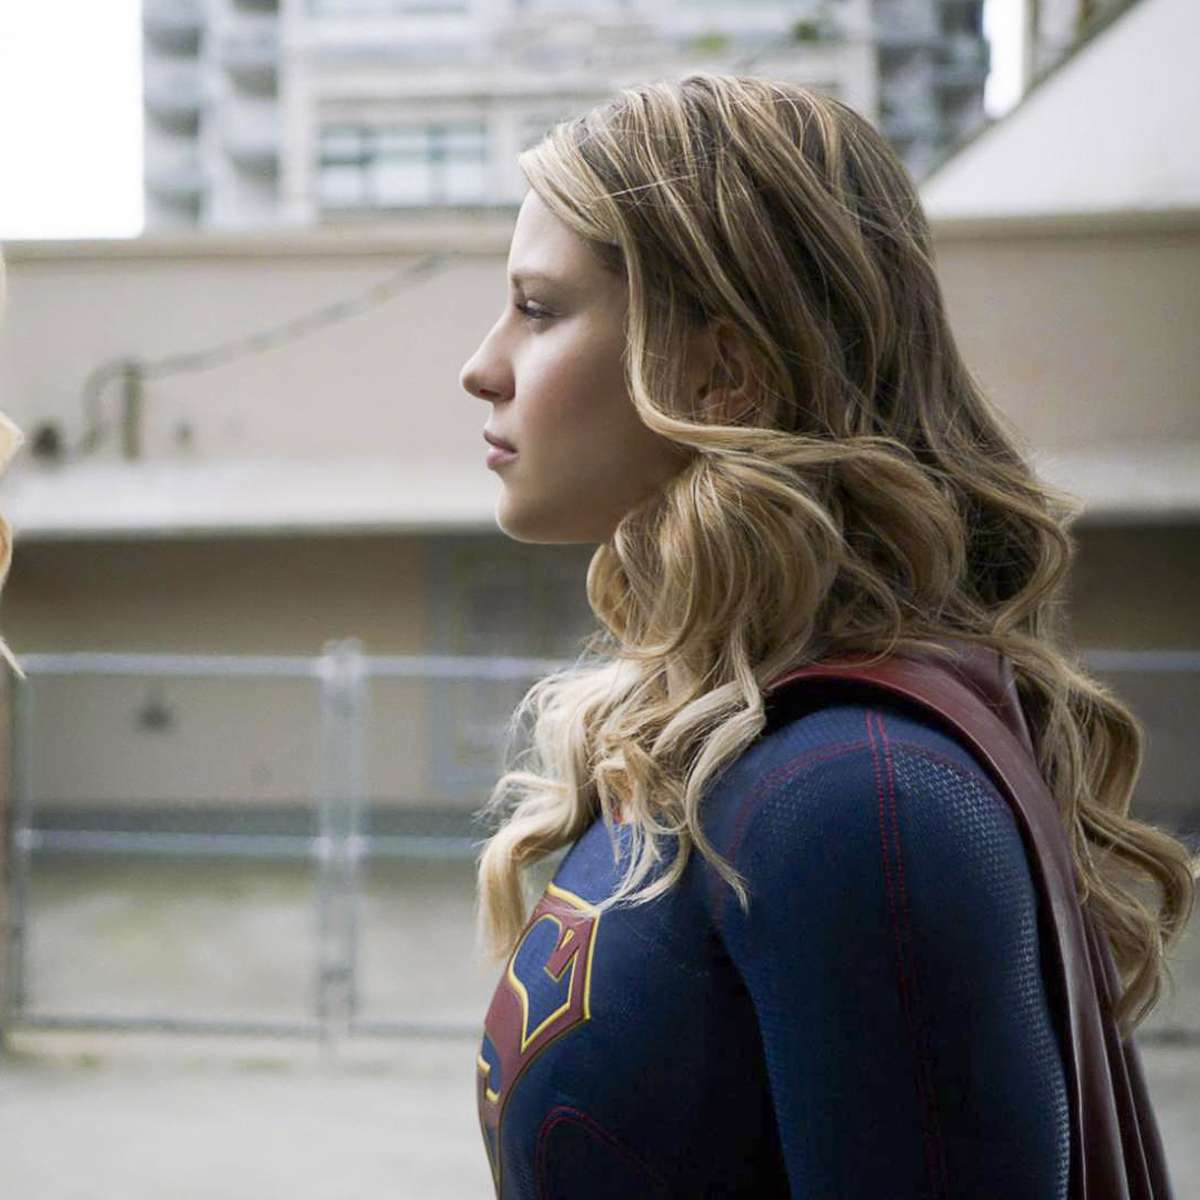 supergirl-302-triggers-t1320652-cw-stereo_a1466dbce_cwtv_1920x1080.jpg